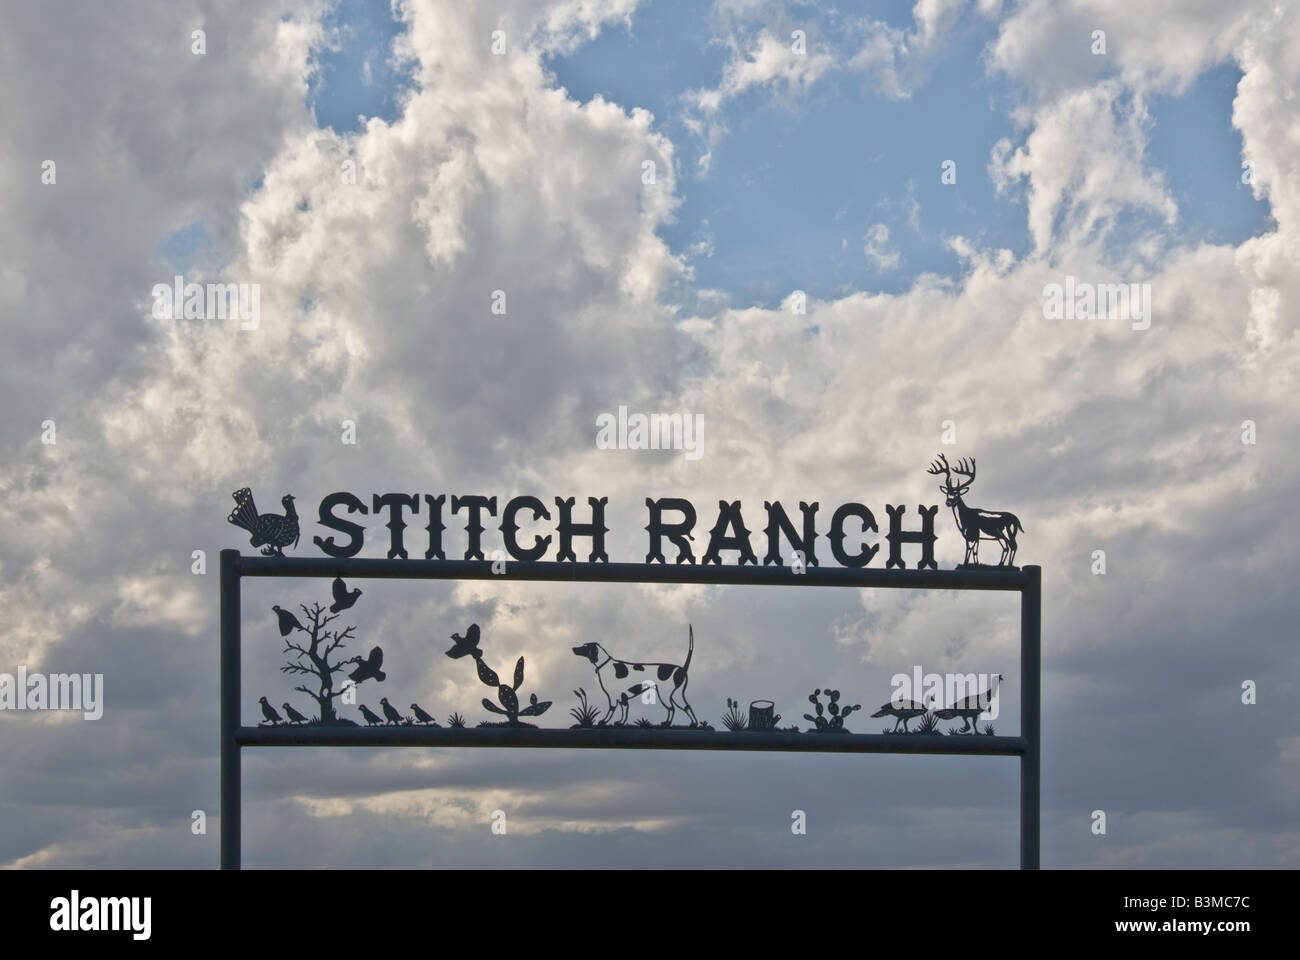 Texas Panhandle Region Stitch Ranch sign - Stock Image